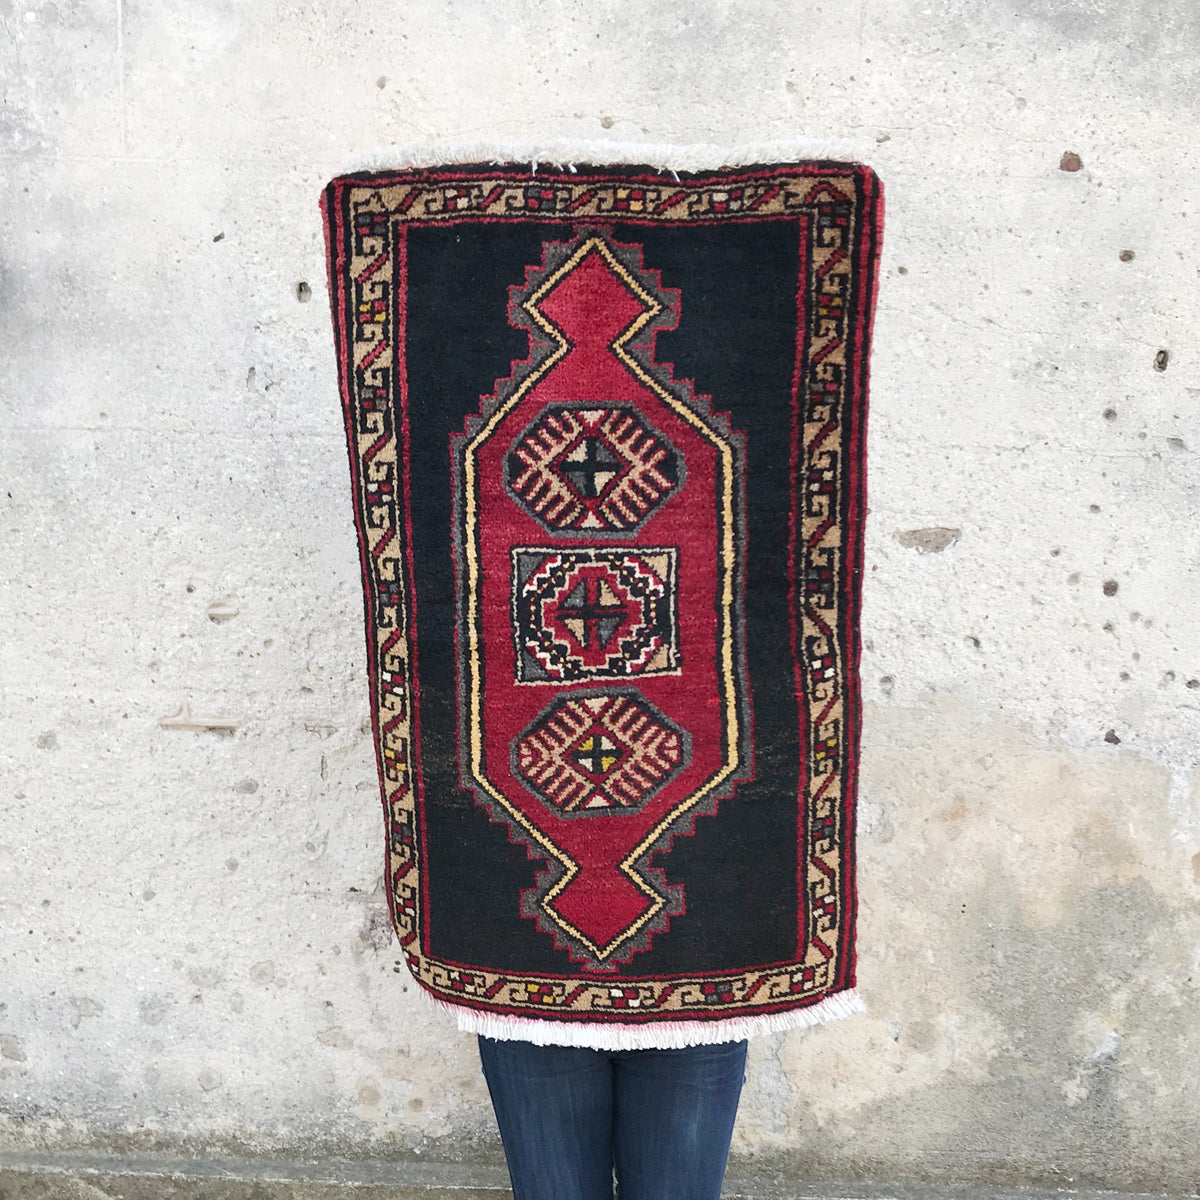 This vintage Turkish rug is small but bold with a graphic geometric design. 20x32 inches.